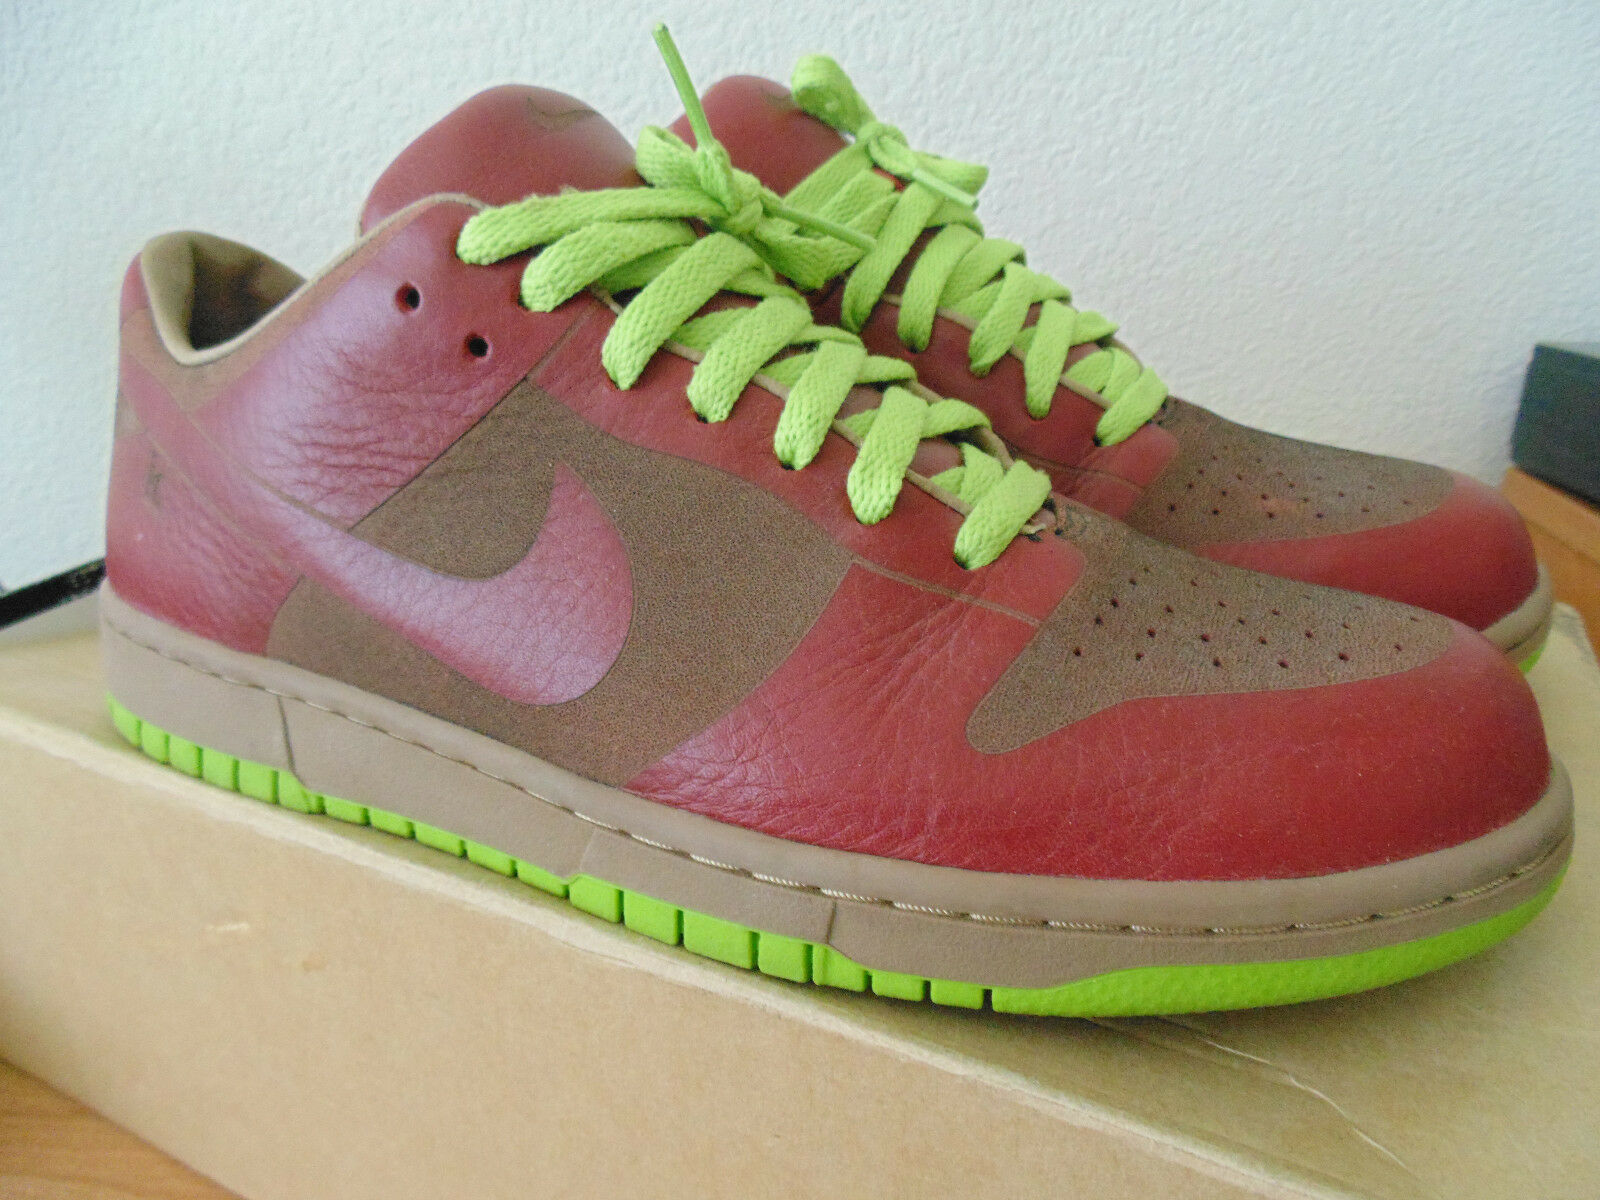 DS 2005 Nike Dunk Low One Piece Laser US 10 Tier 0 QS 311611-661